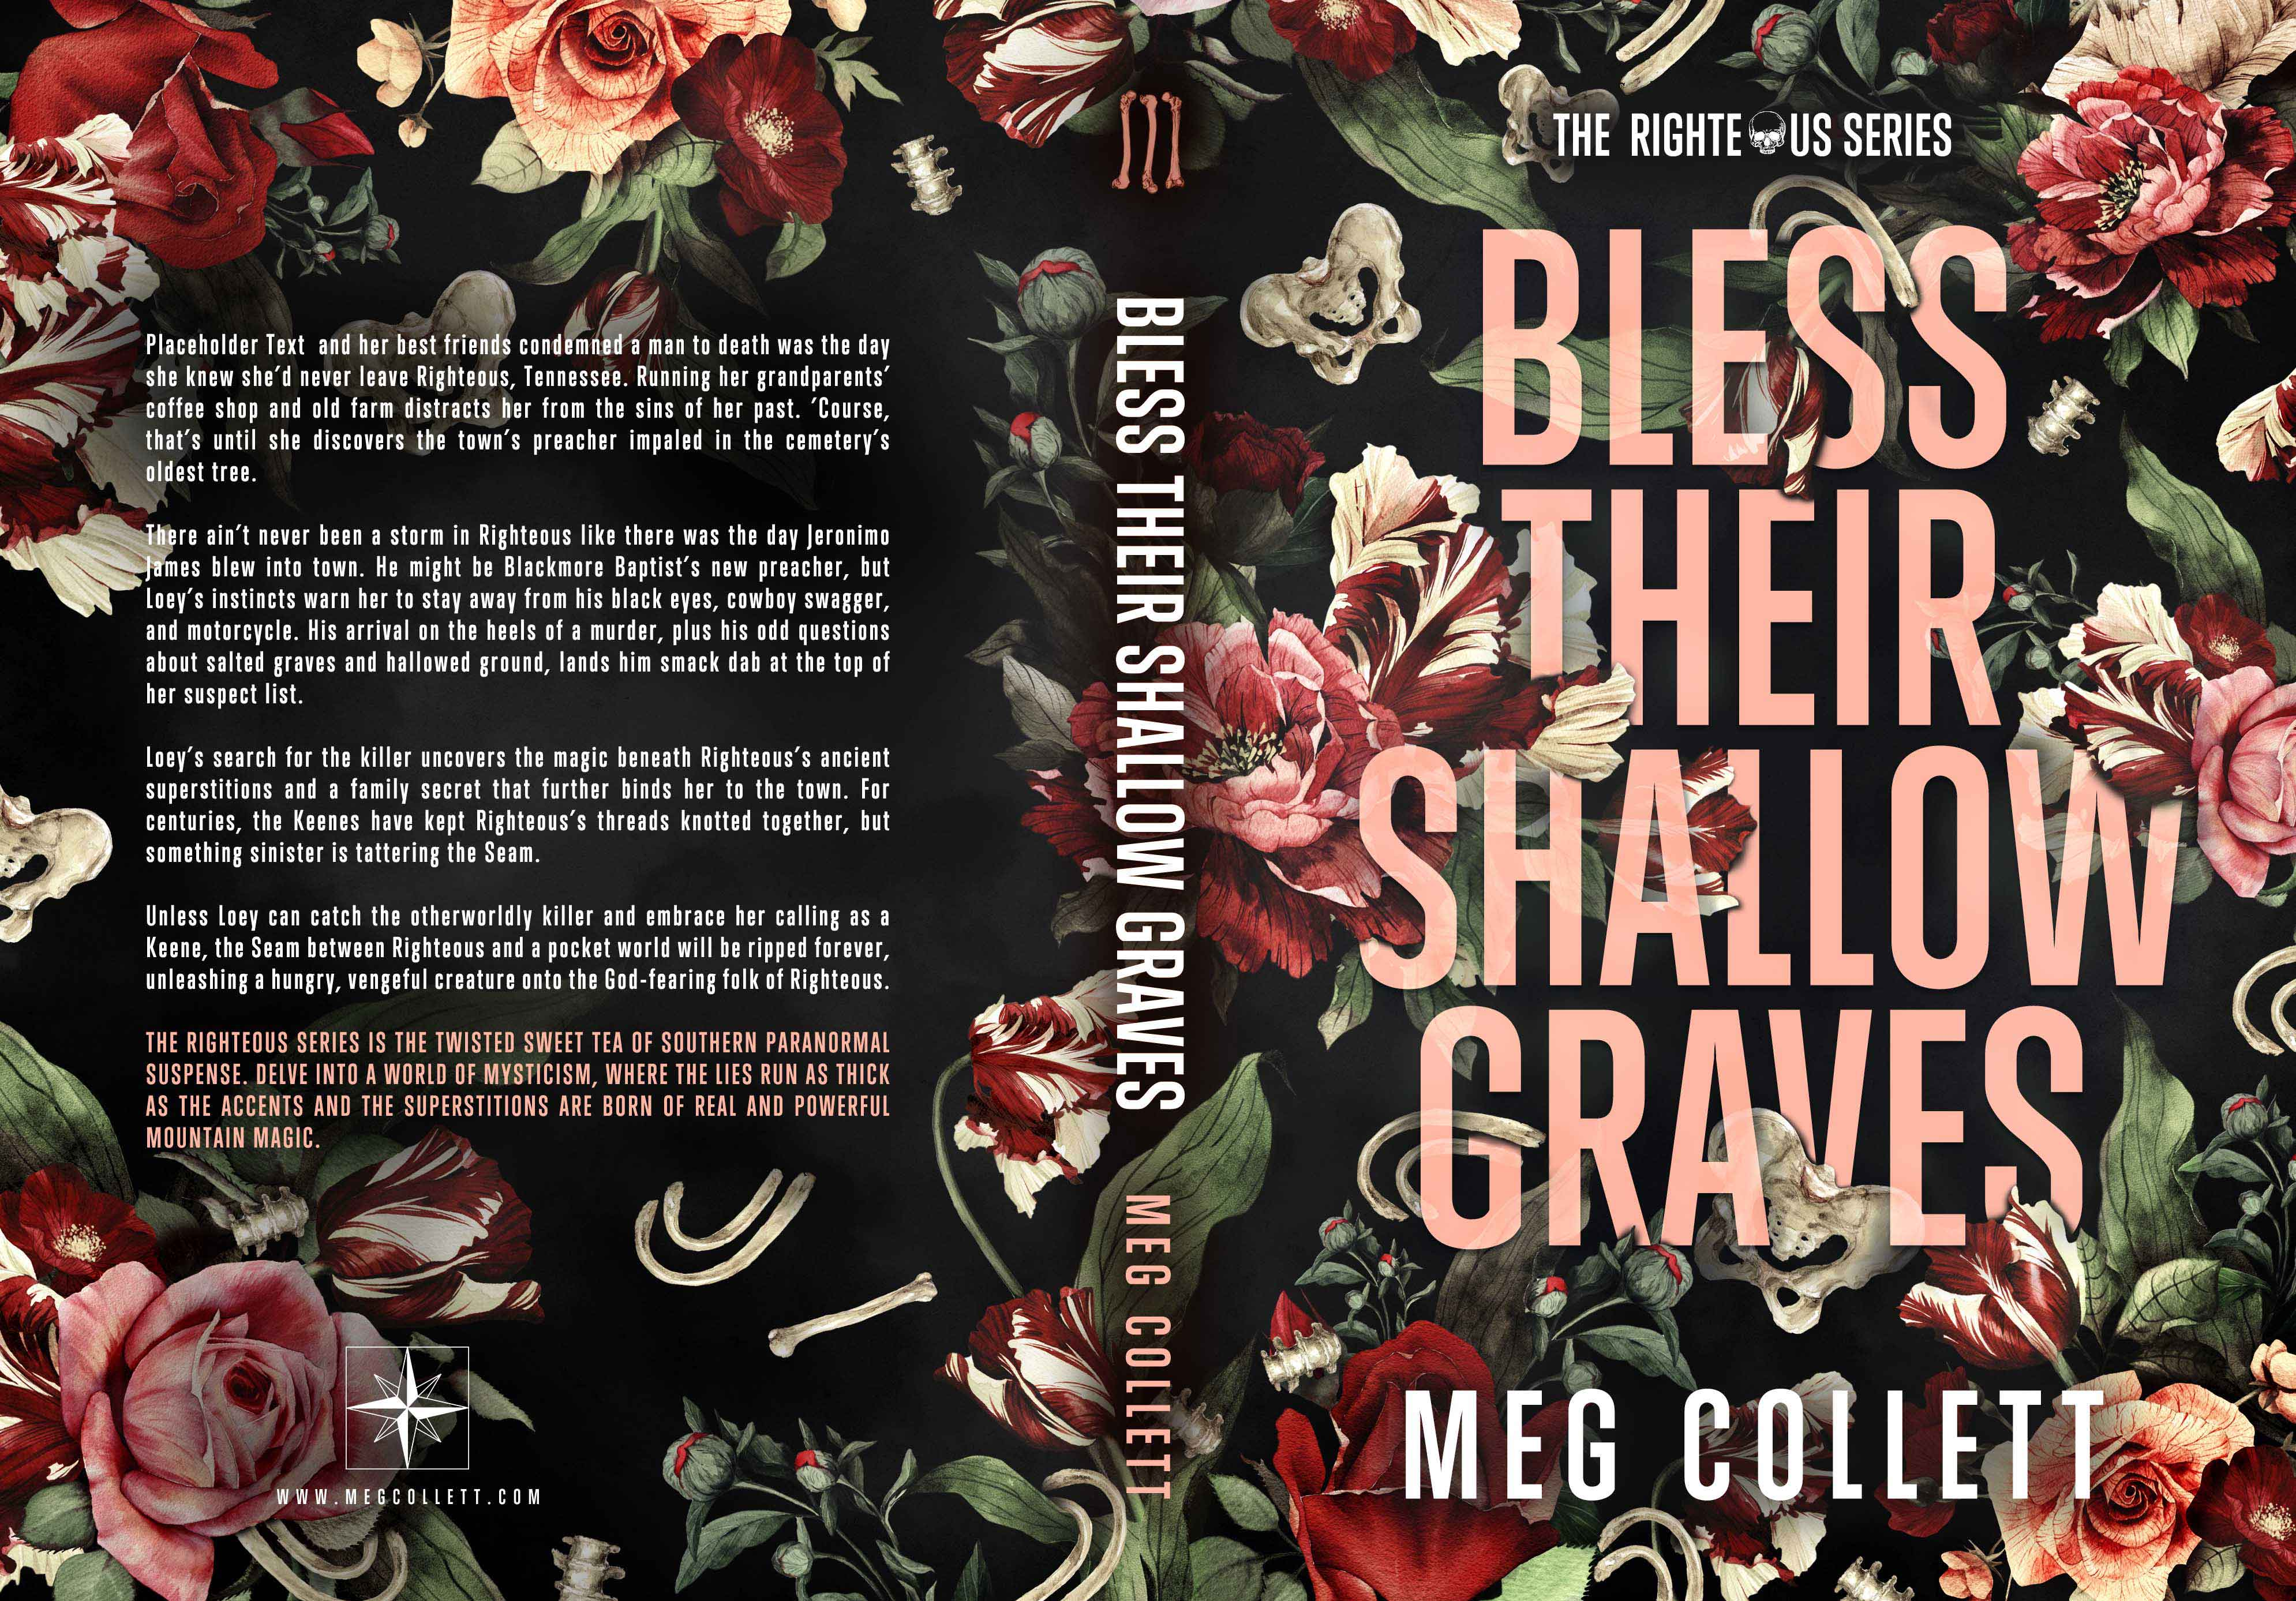 BlessTheirShallowGraves6x9_450.v7_WEB